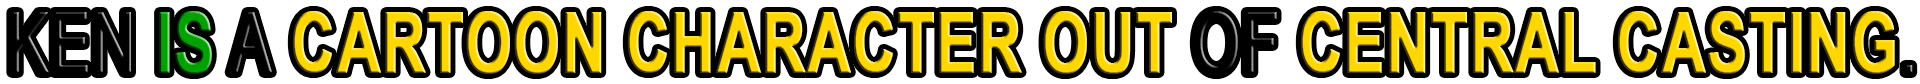 KEN IS A CARTOON CHARACTER OUT OF CENTRAL CASTING